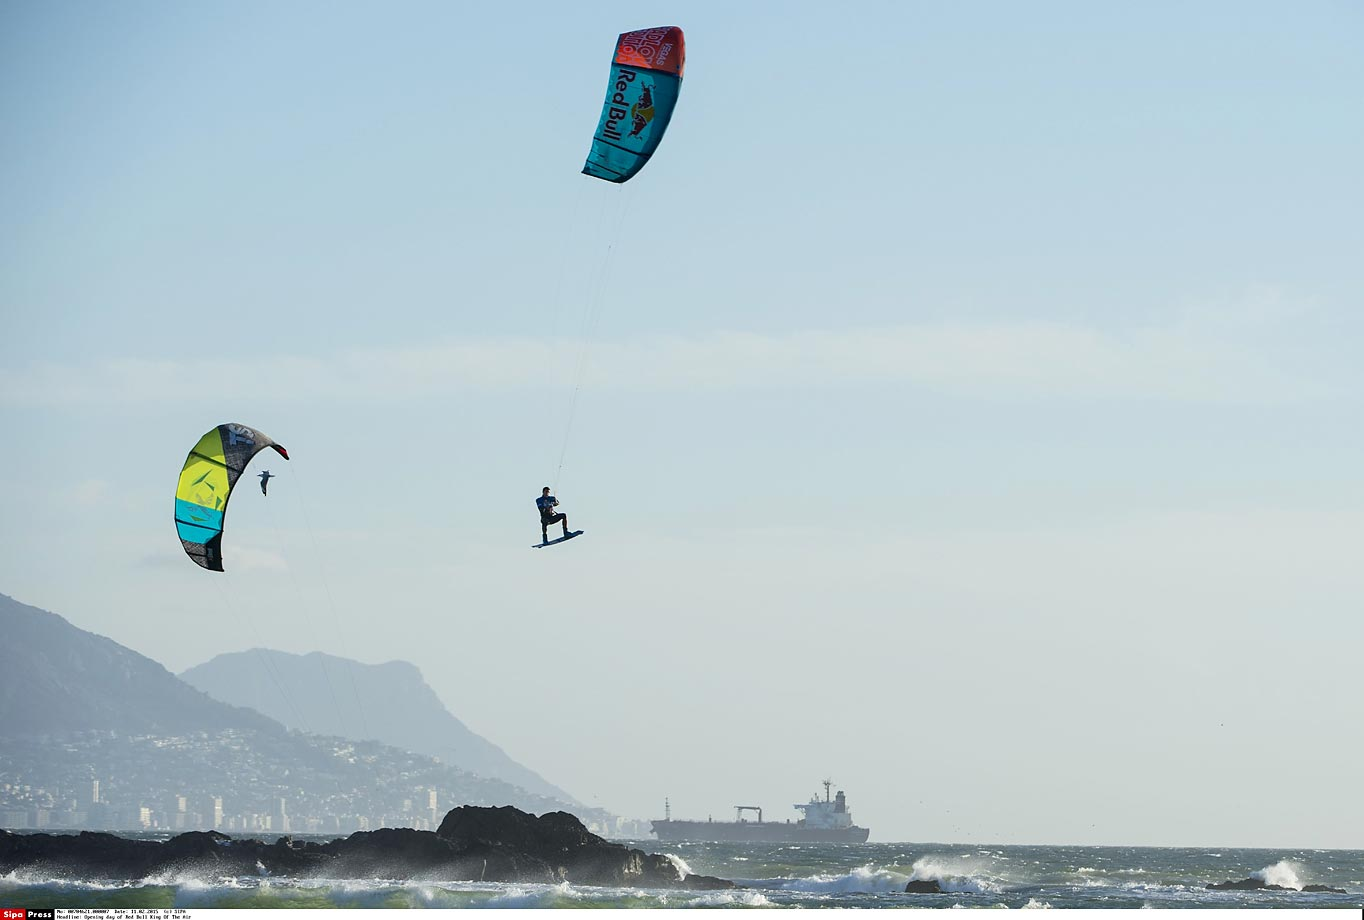 Aaron Hadlow performs during the opening day of Red Bull King Of The Air that took place at Big Bay, Cape Town, South Africa.